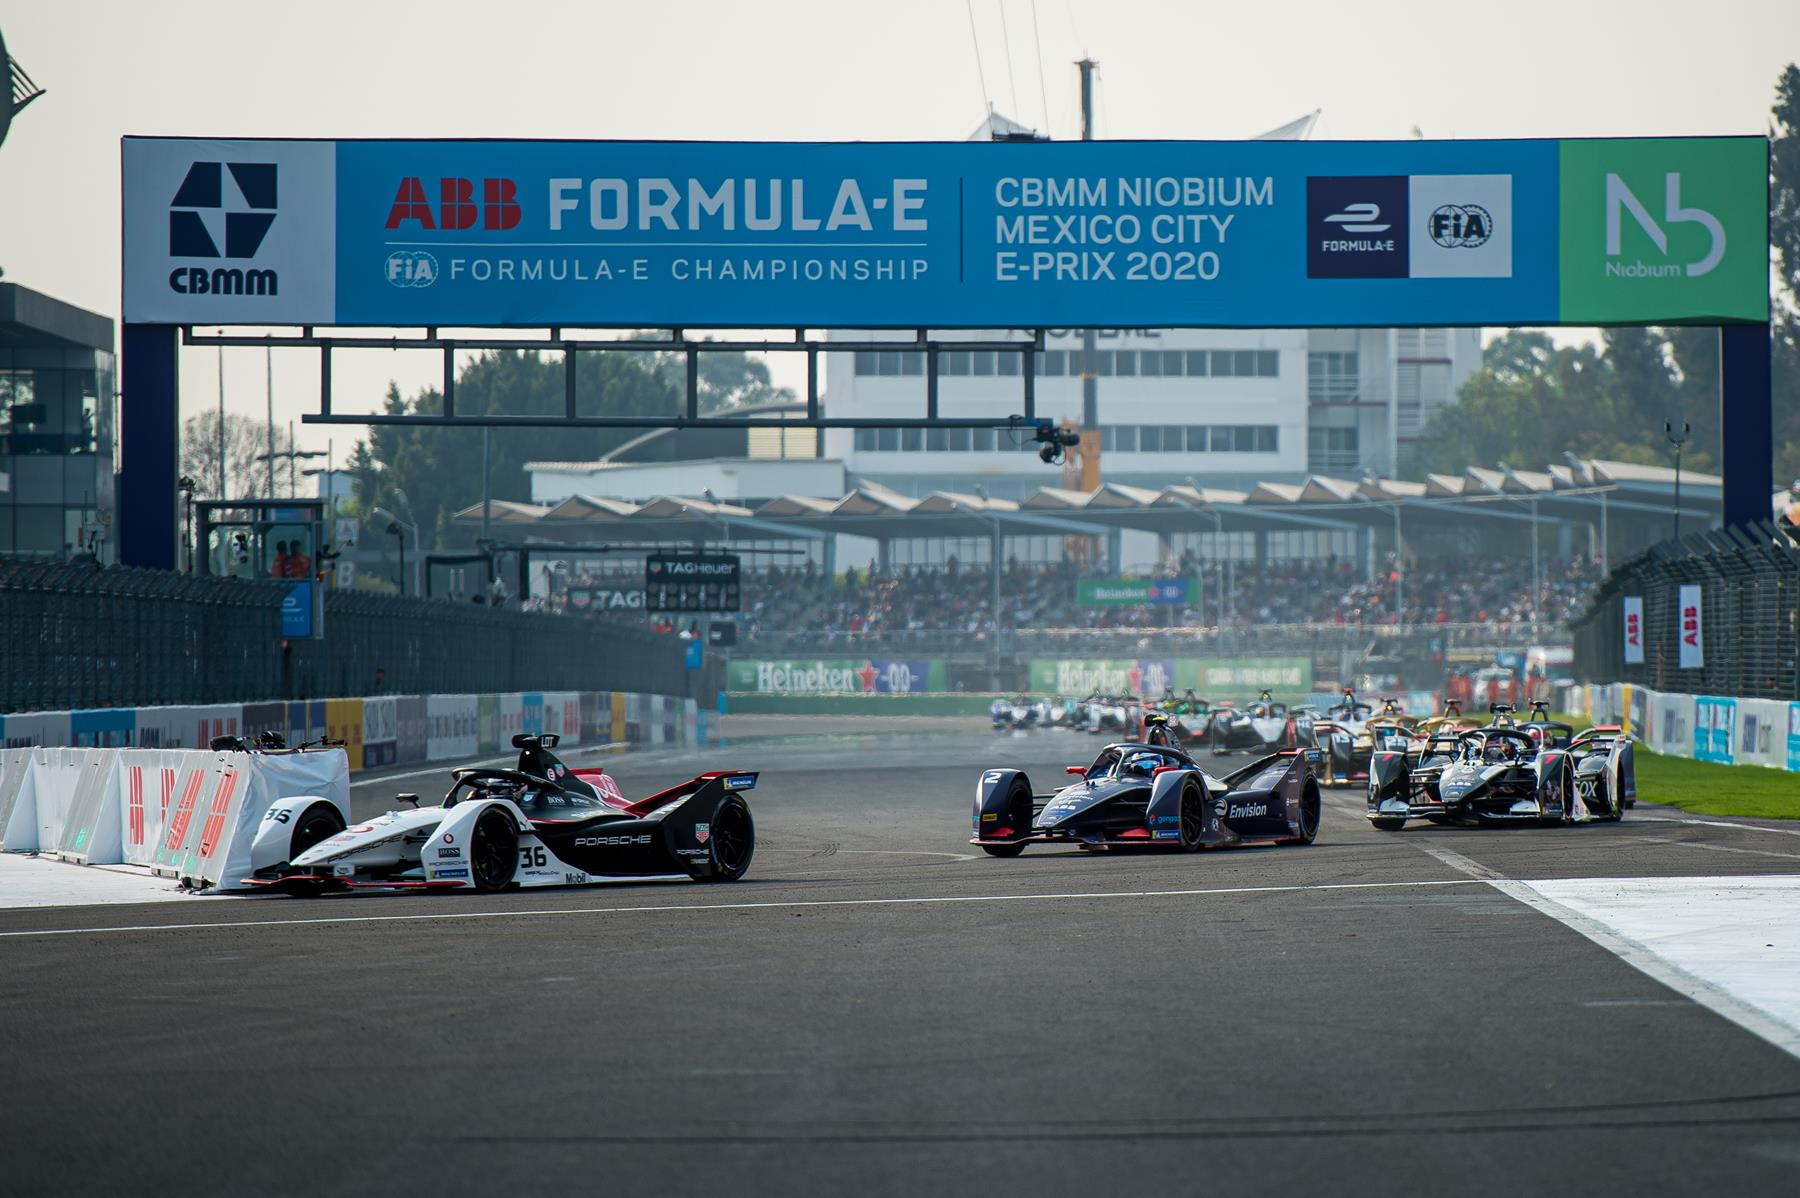 Mexico-City-E-Prix-2020-Andre-Lotterer-TAG-Heuer-Porsche-Racing-leads-the-field-Turn-1